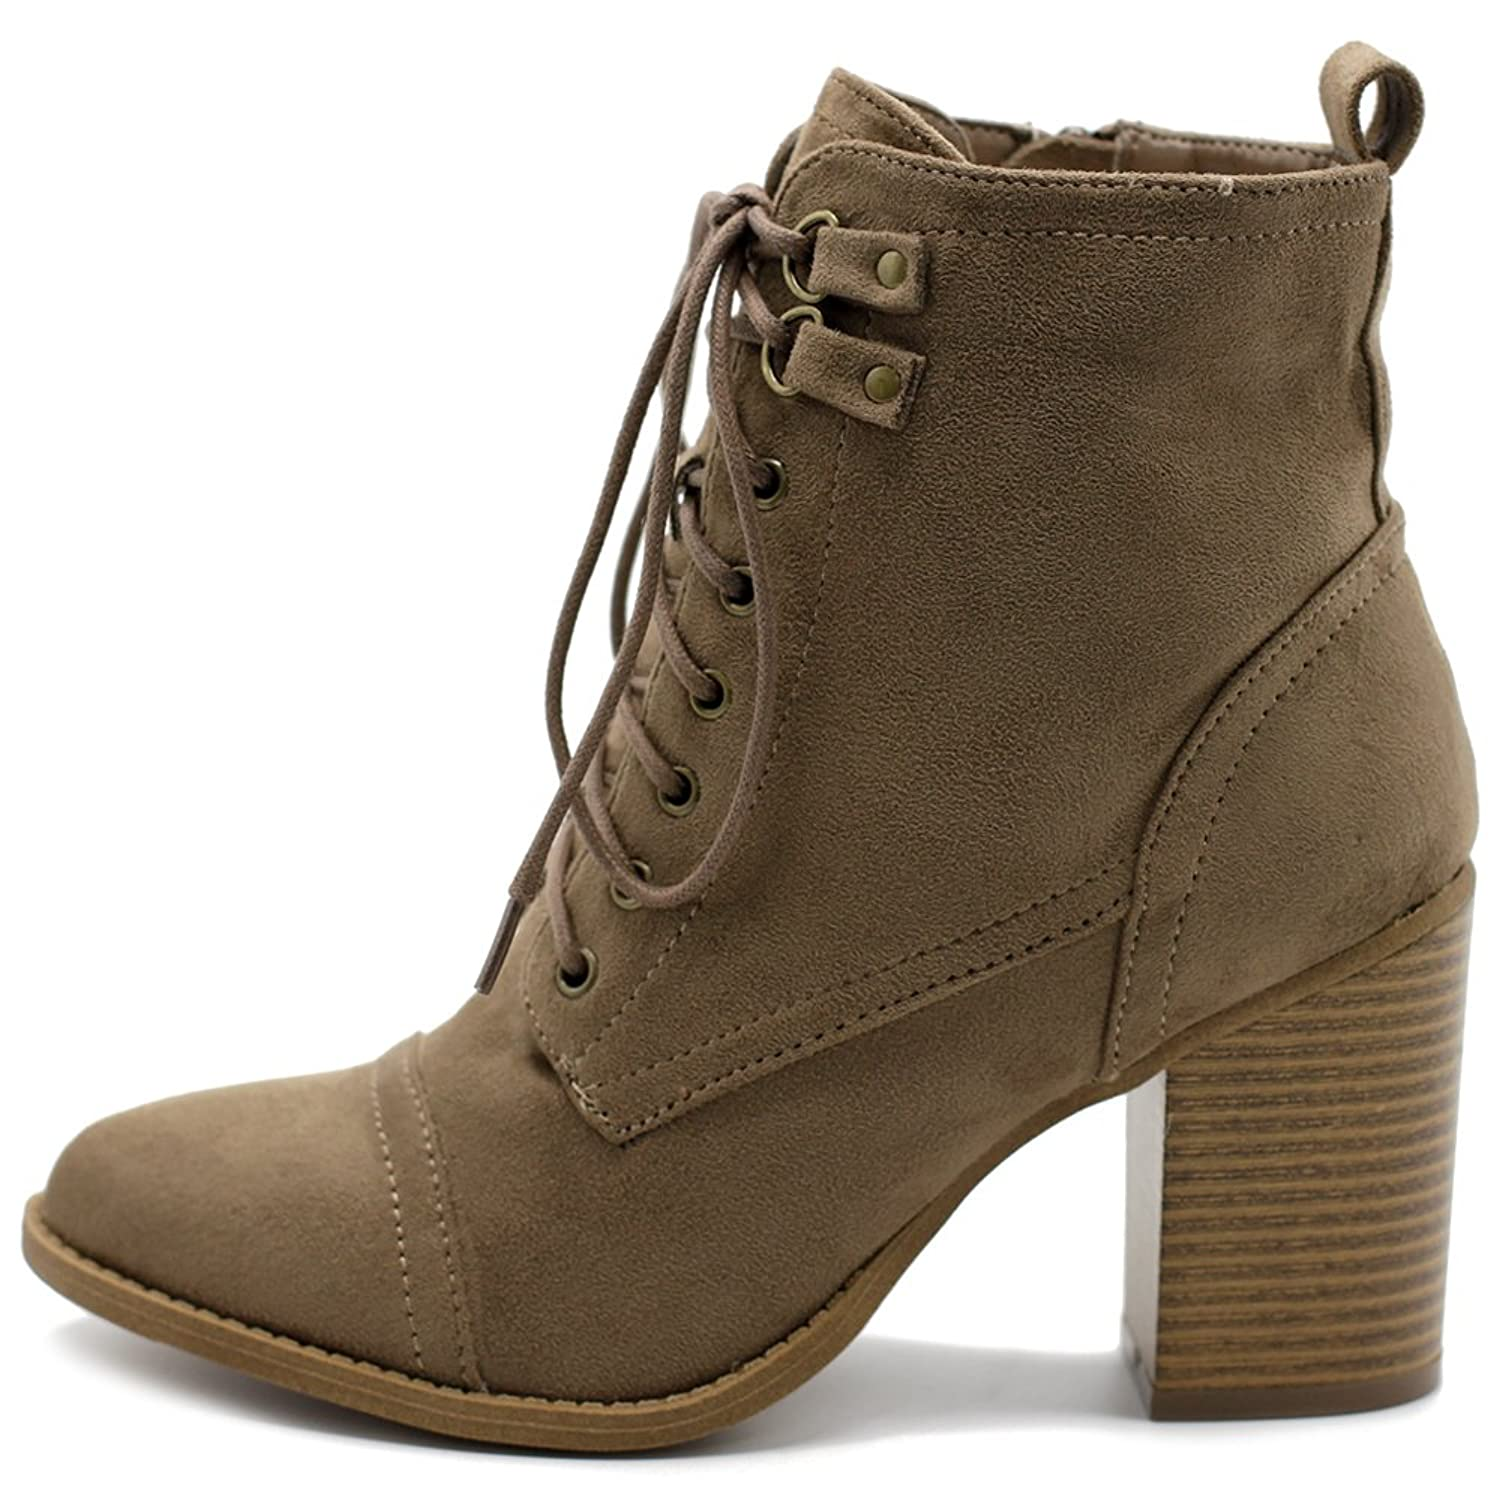 Ollio Women's Shoe Faux Suede Lace Up Stacked High Heel Ankle Boots SSB09